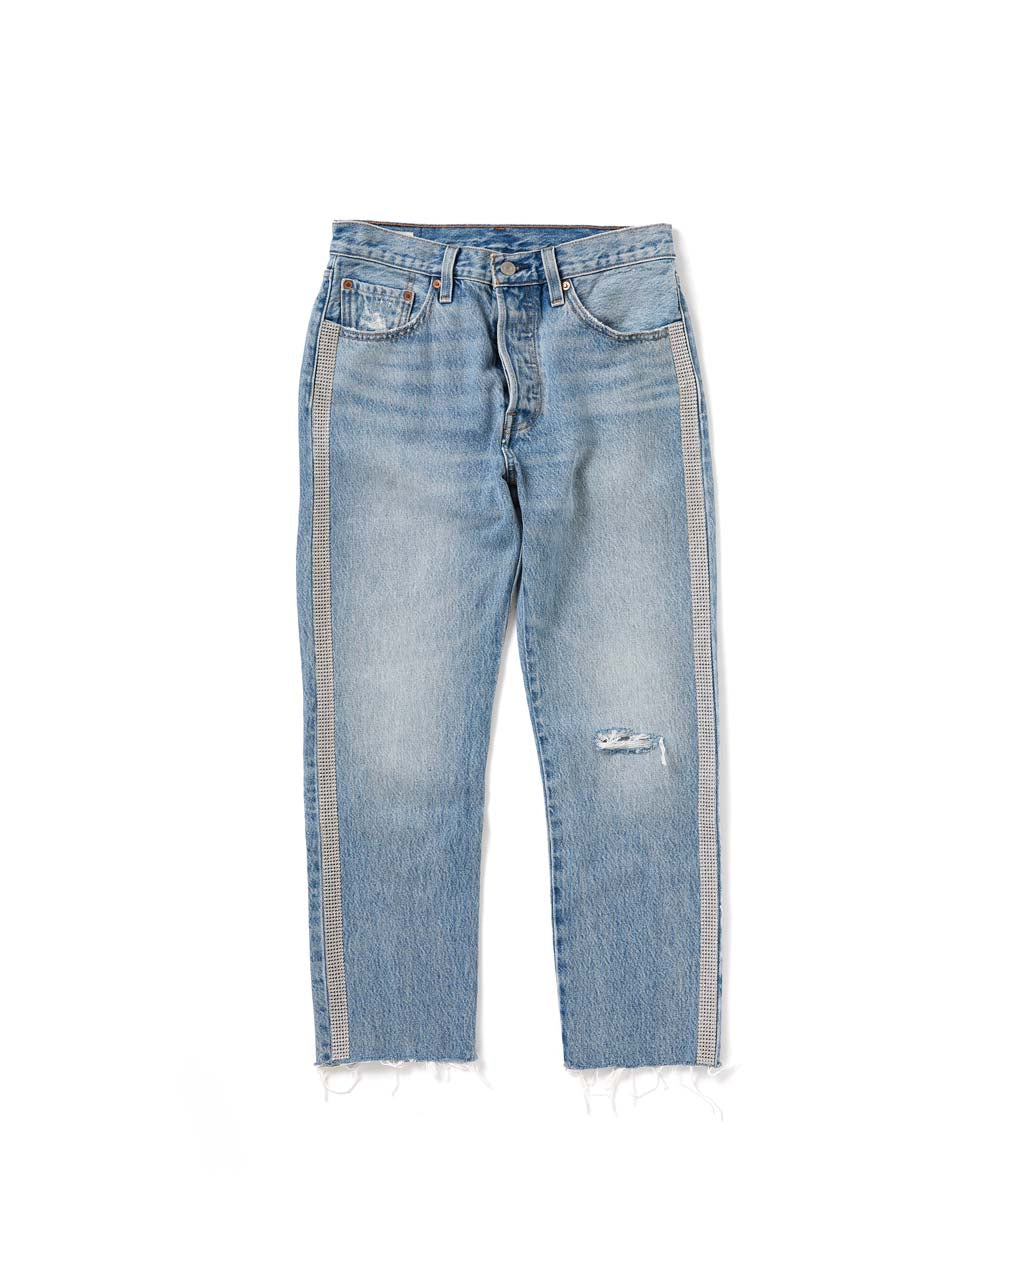 501 Crop Jeans - Diamond In The Rough by levi's - jeans - ban do